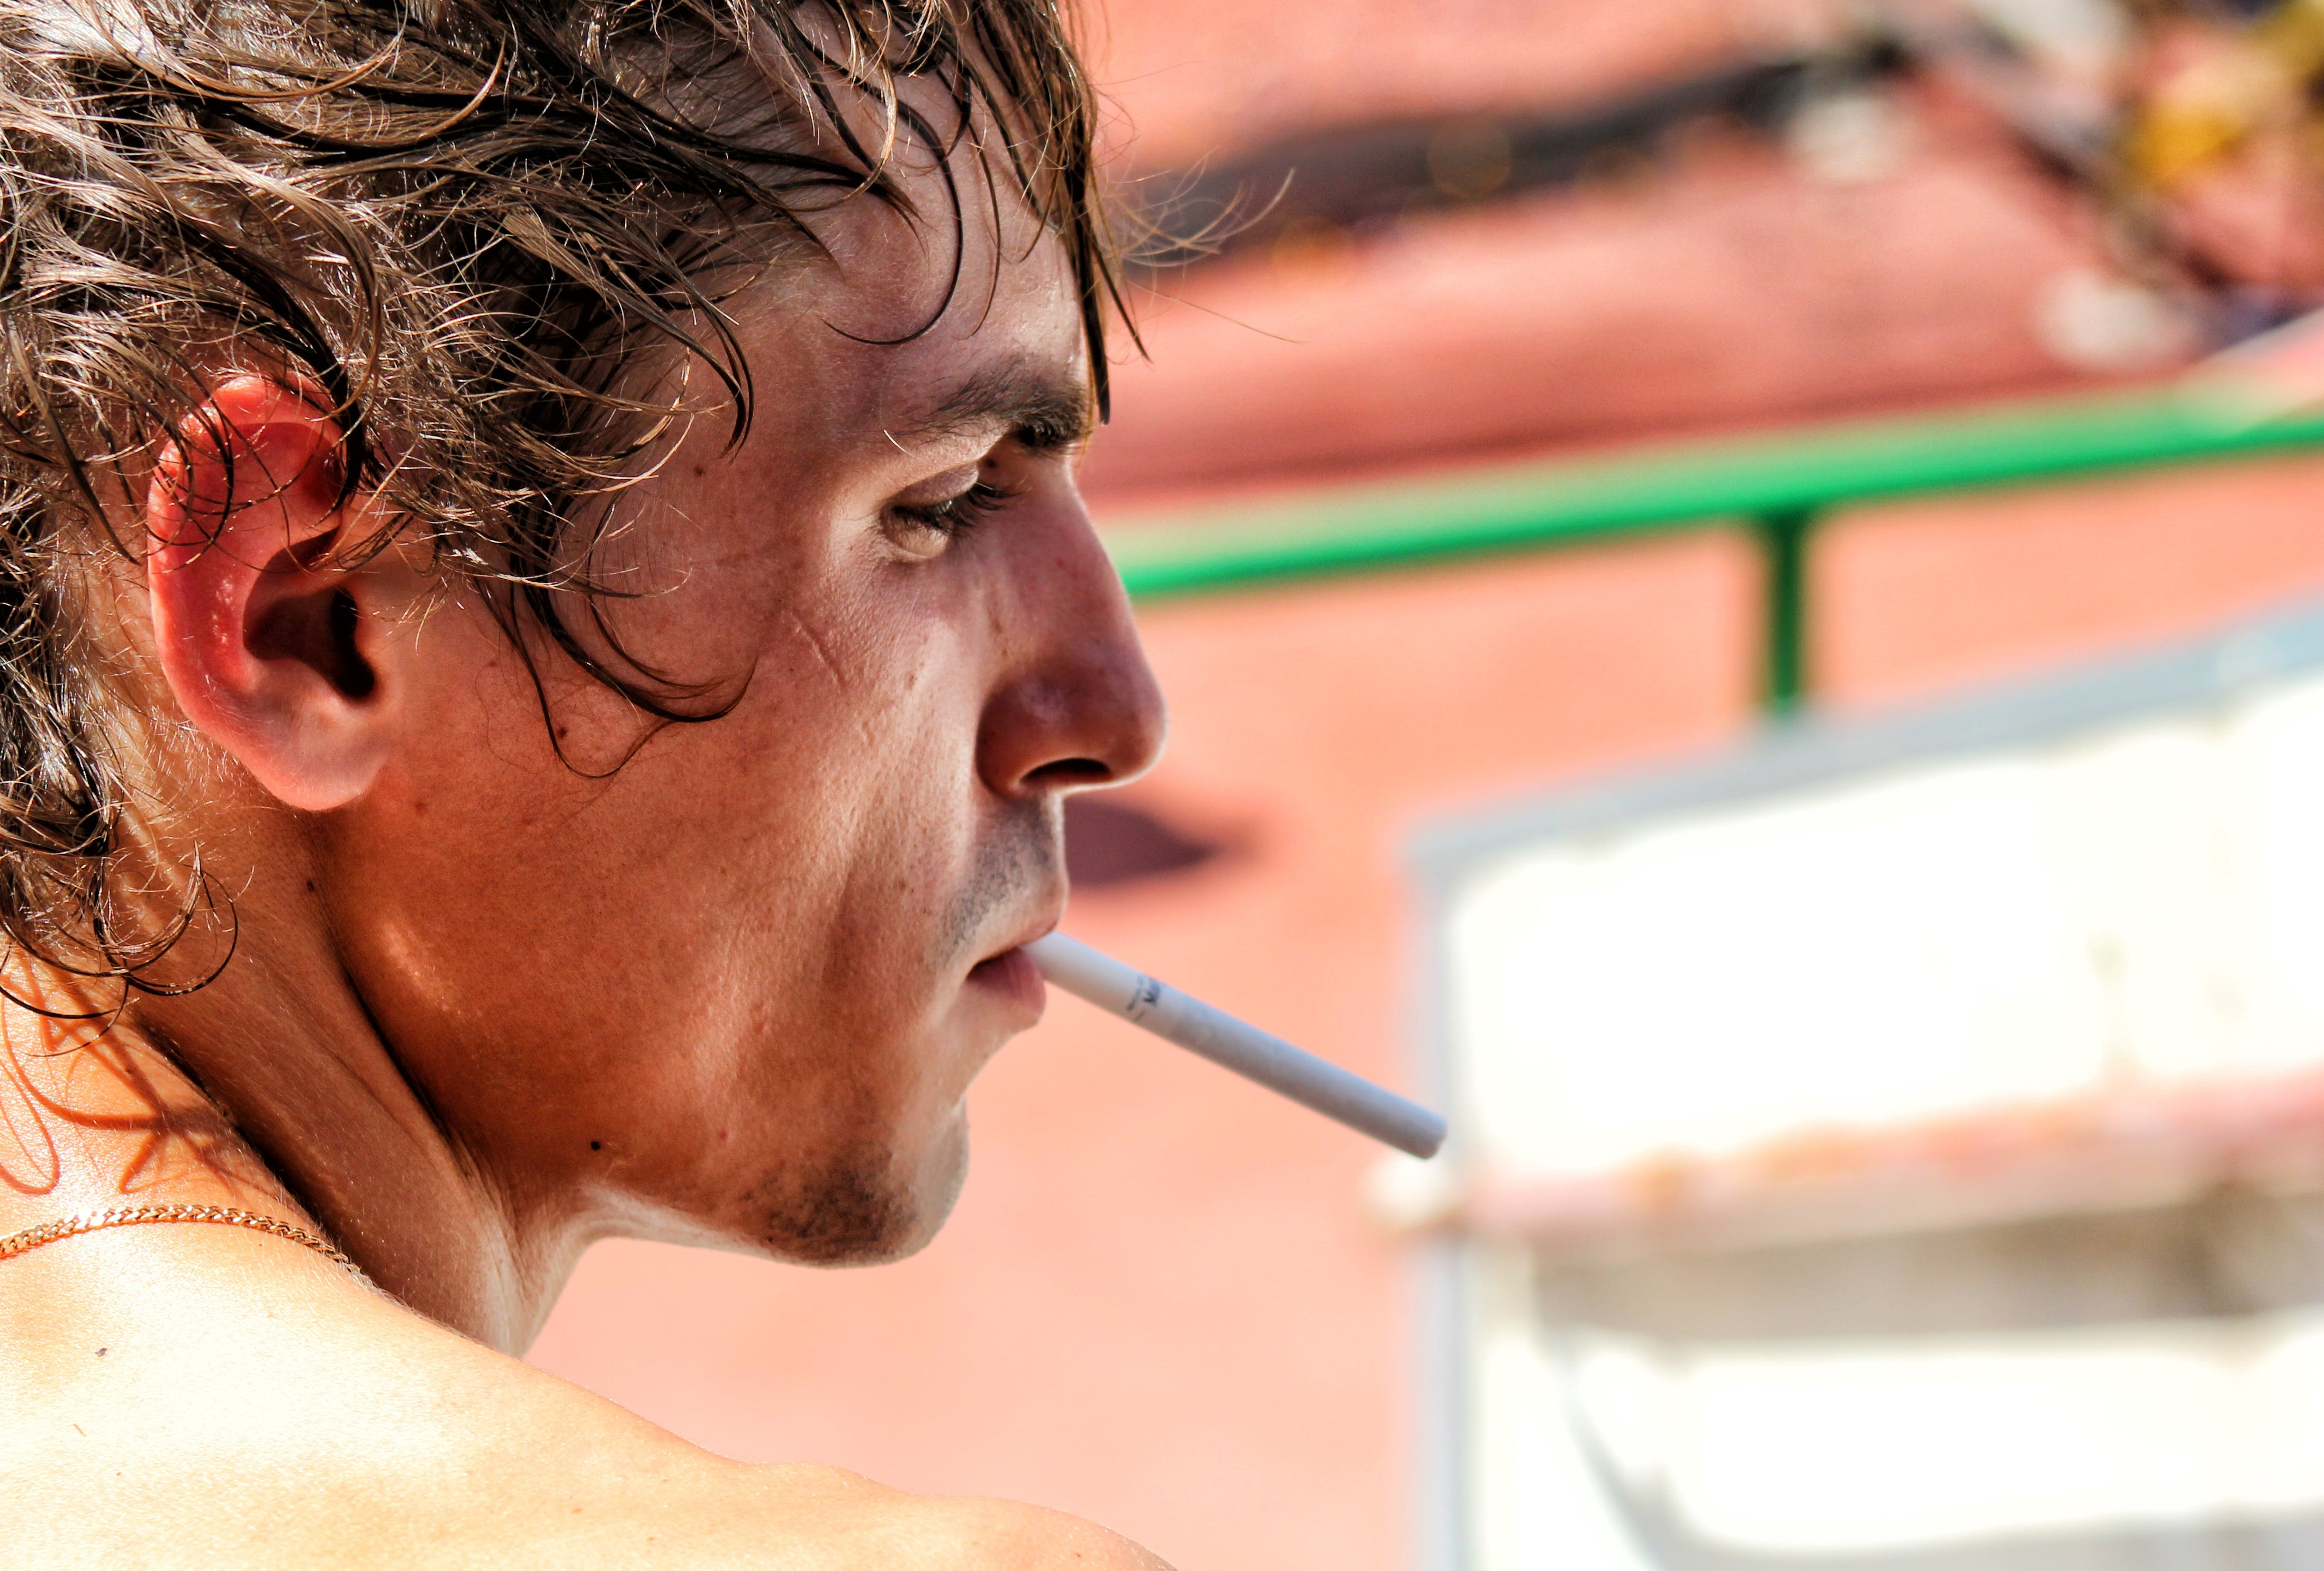 Free stock photo of man, person, cigarette, smoking